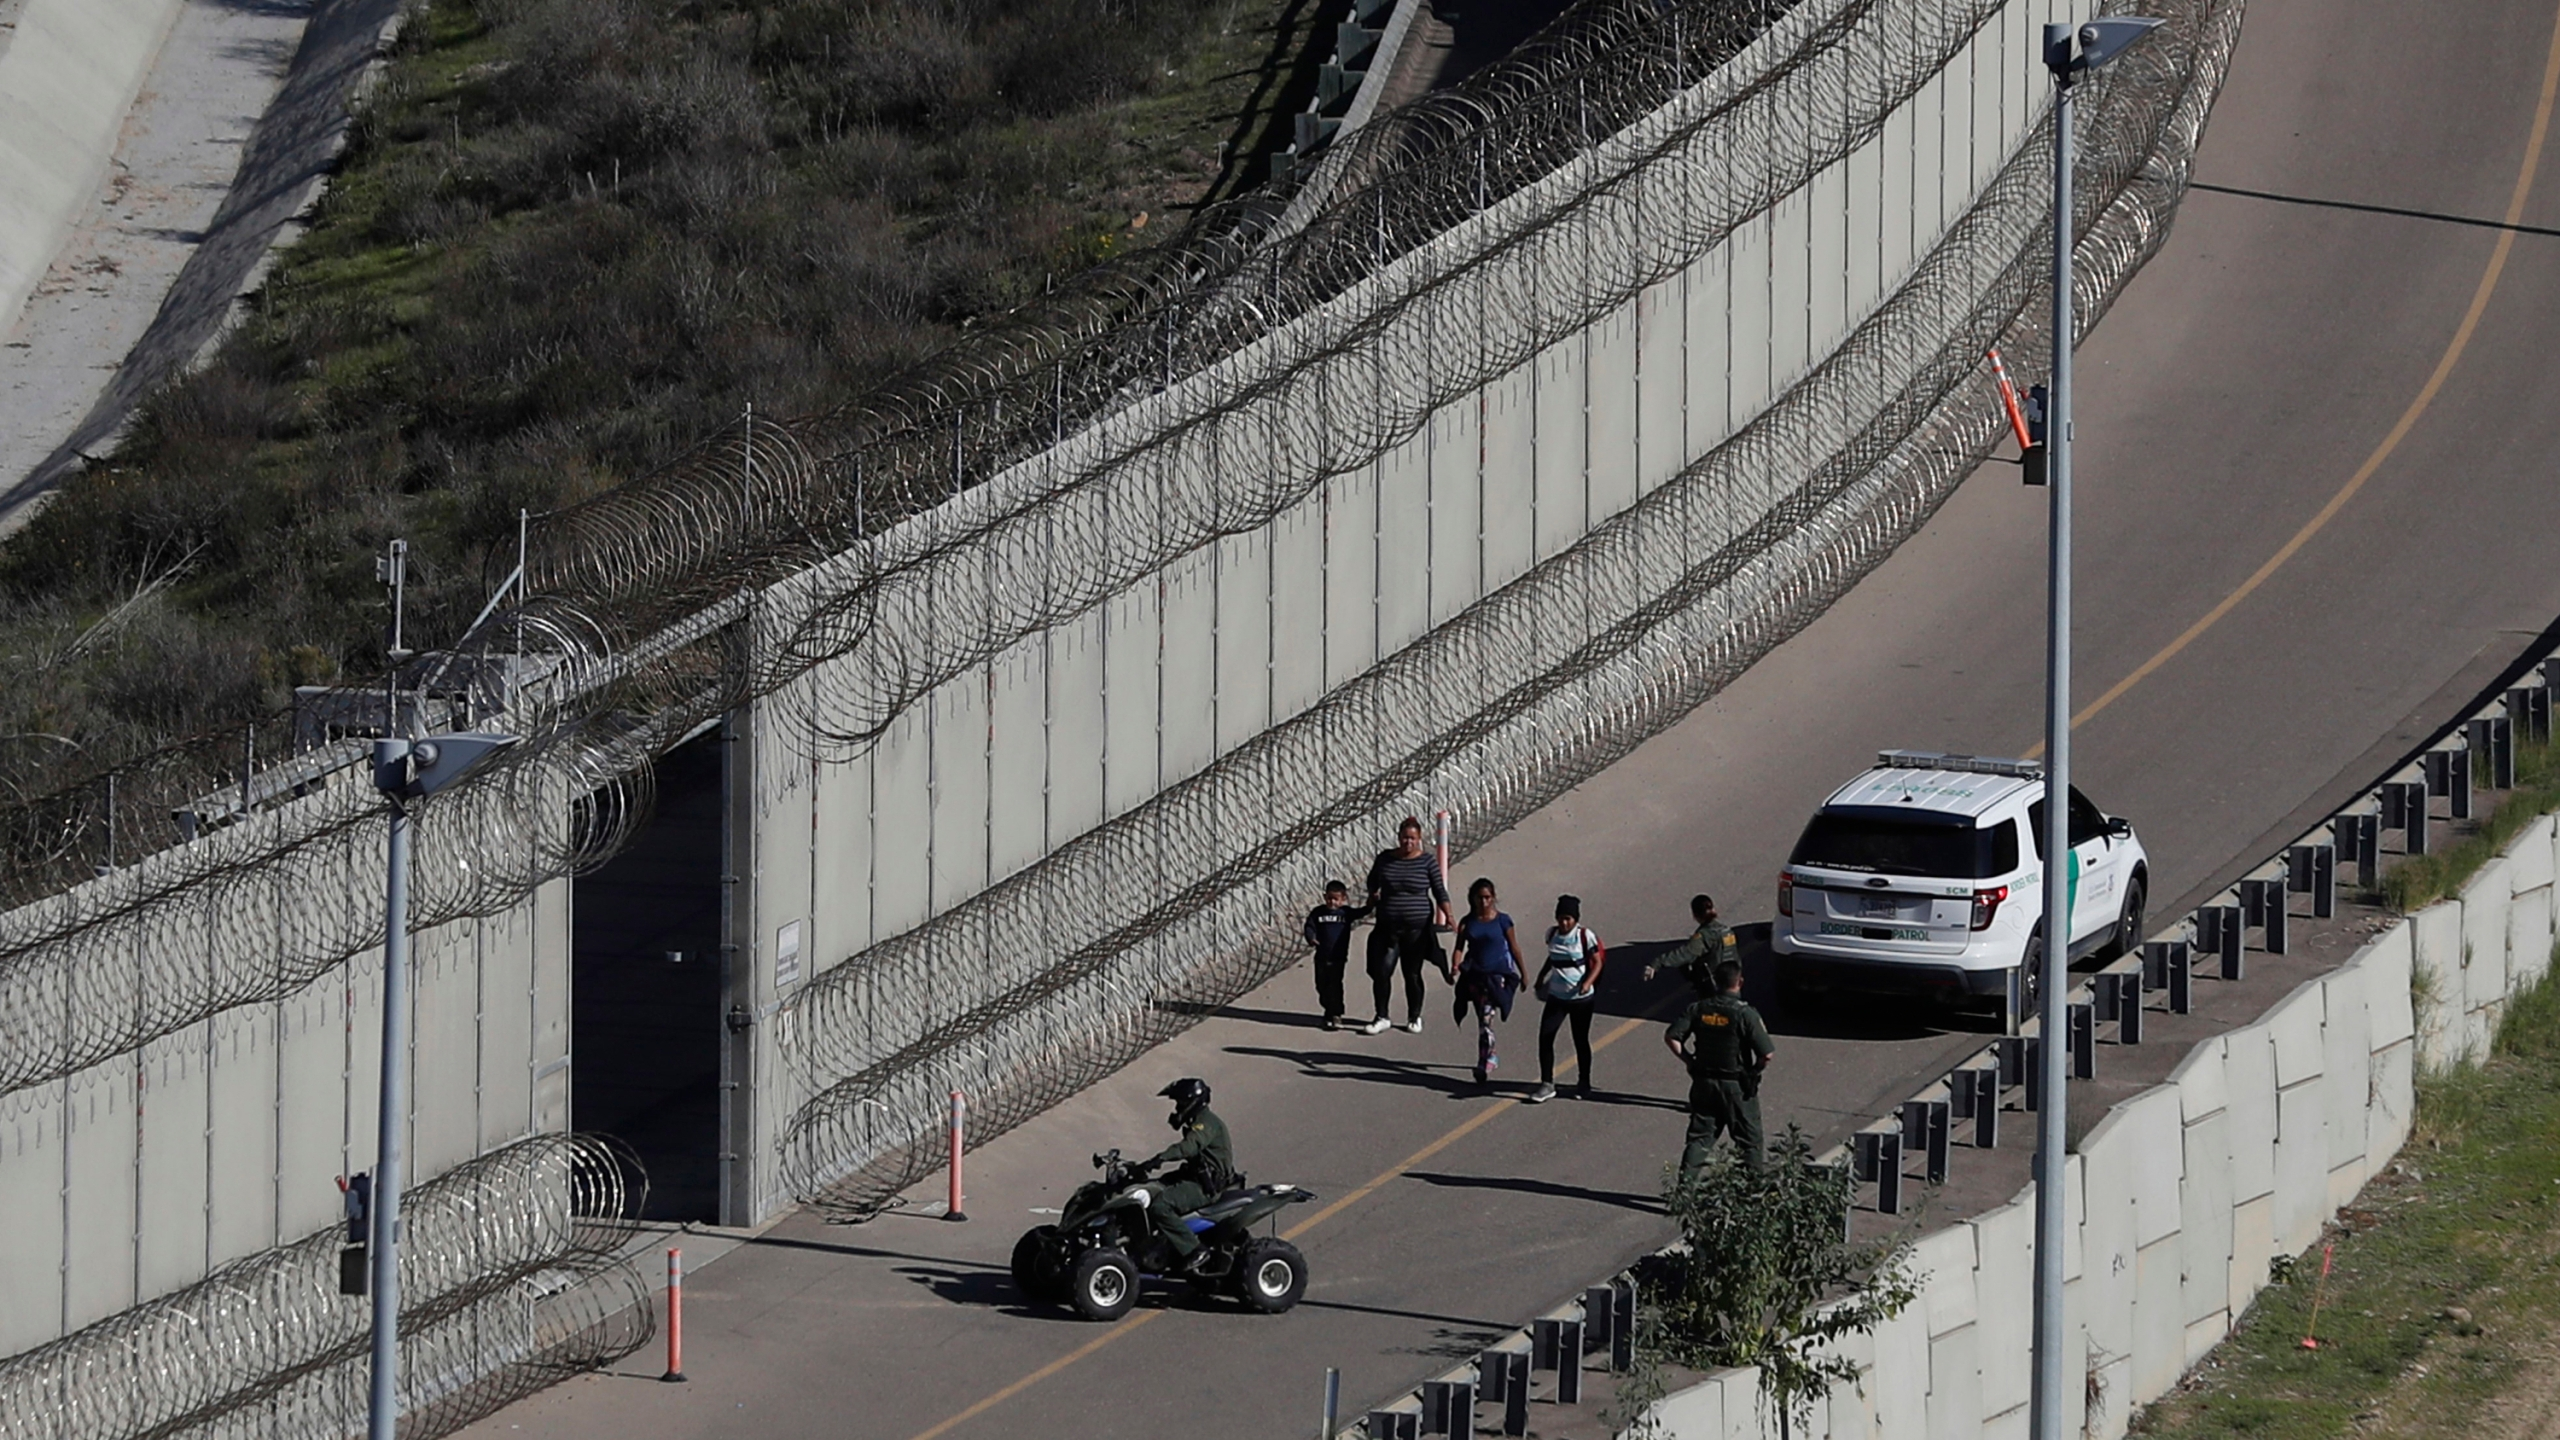 In this Dec. 16, 2018, file photo, Honduran asylum seekers are taken into custody by U.S. Border Patrol agents after the group crossed the U.S. border wall into San Diego, in California, seen from Tijuana, Mexico. The state of California is freeing up to $28 million to help asylum-seekers released in the U.S. with notices to appear in court with hotels, medical screenings, and transportation. California's generosity is a stark contrast to Arizona and Texas, where border state officials have challenged and sharply criticized President Joe Biden's immigration policies. (AP Photo/Moises Castillo, File)